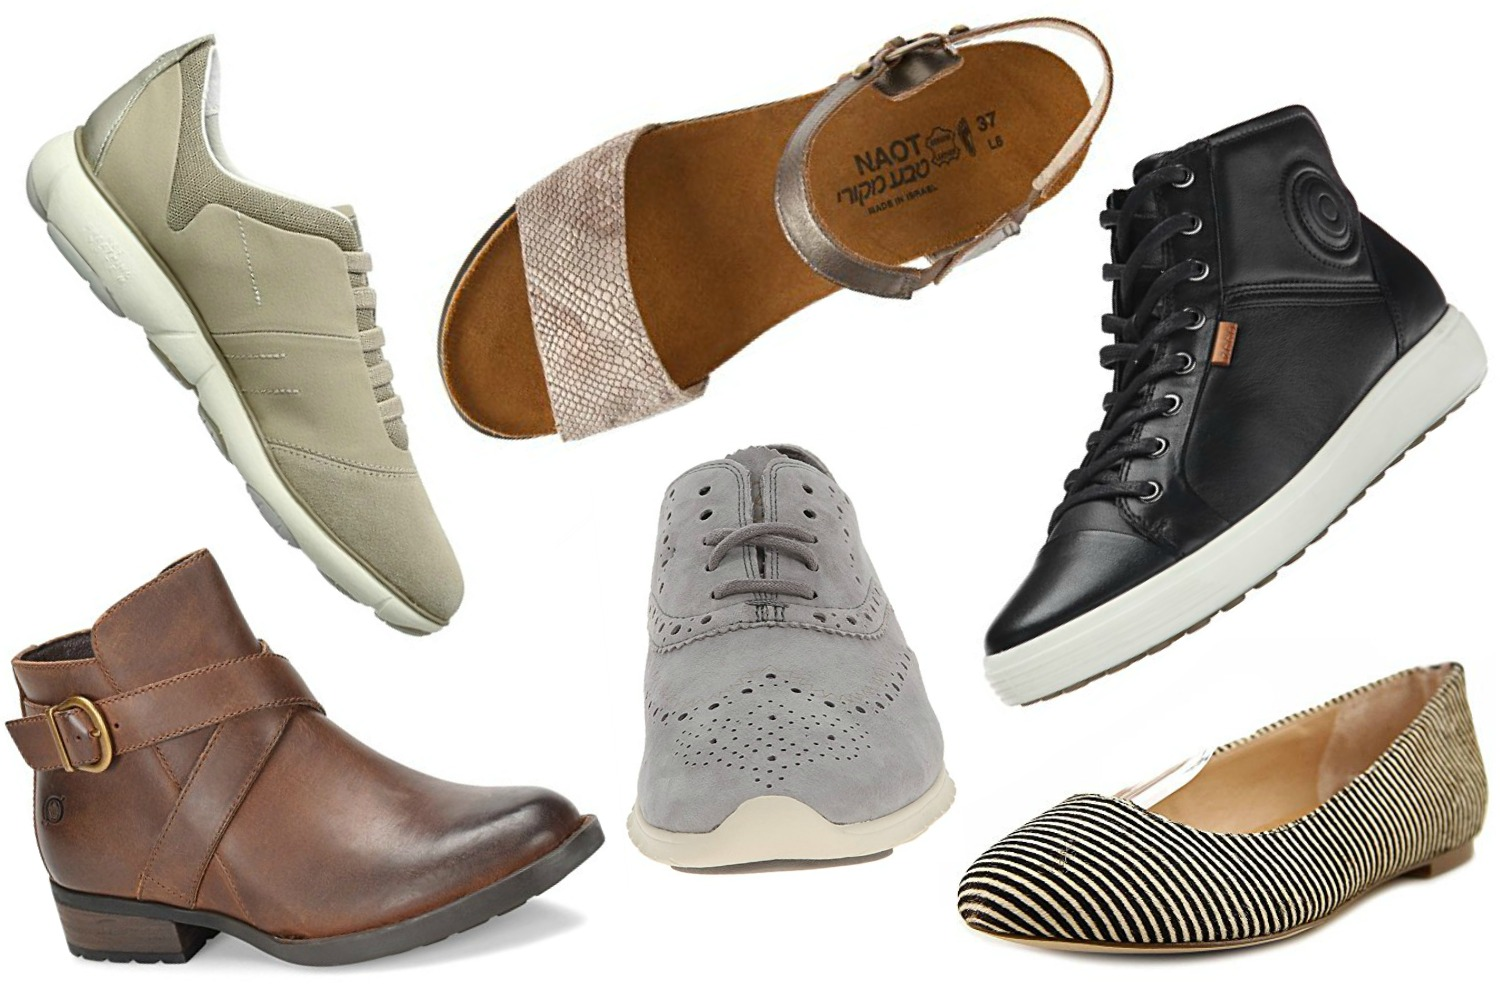 Tips for Picking and Packing the Best Travel Shoes. You pack rugged sandals and sneakers for your European tour — and then find out you'll be visiting Michelin-starred restaurants. athletic and walking shoes for women travelers. Tips for Packing the Best Travel Shoes. Pack no more than three pairs. The pros say two should do, but for.